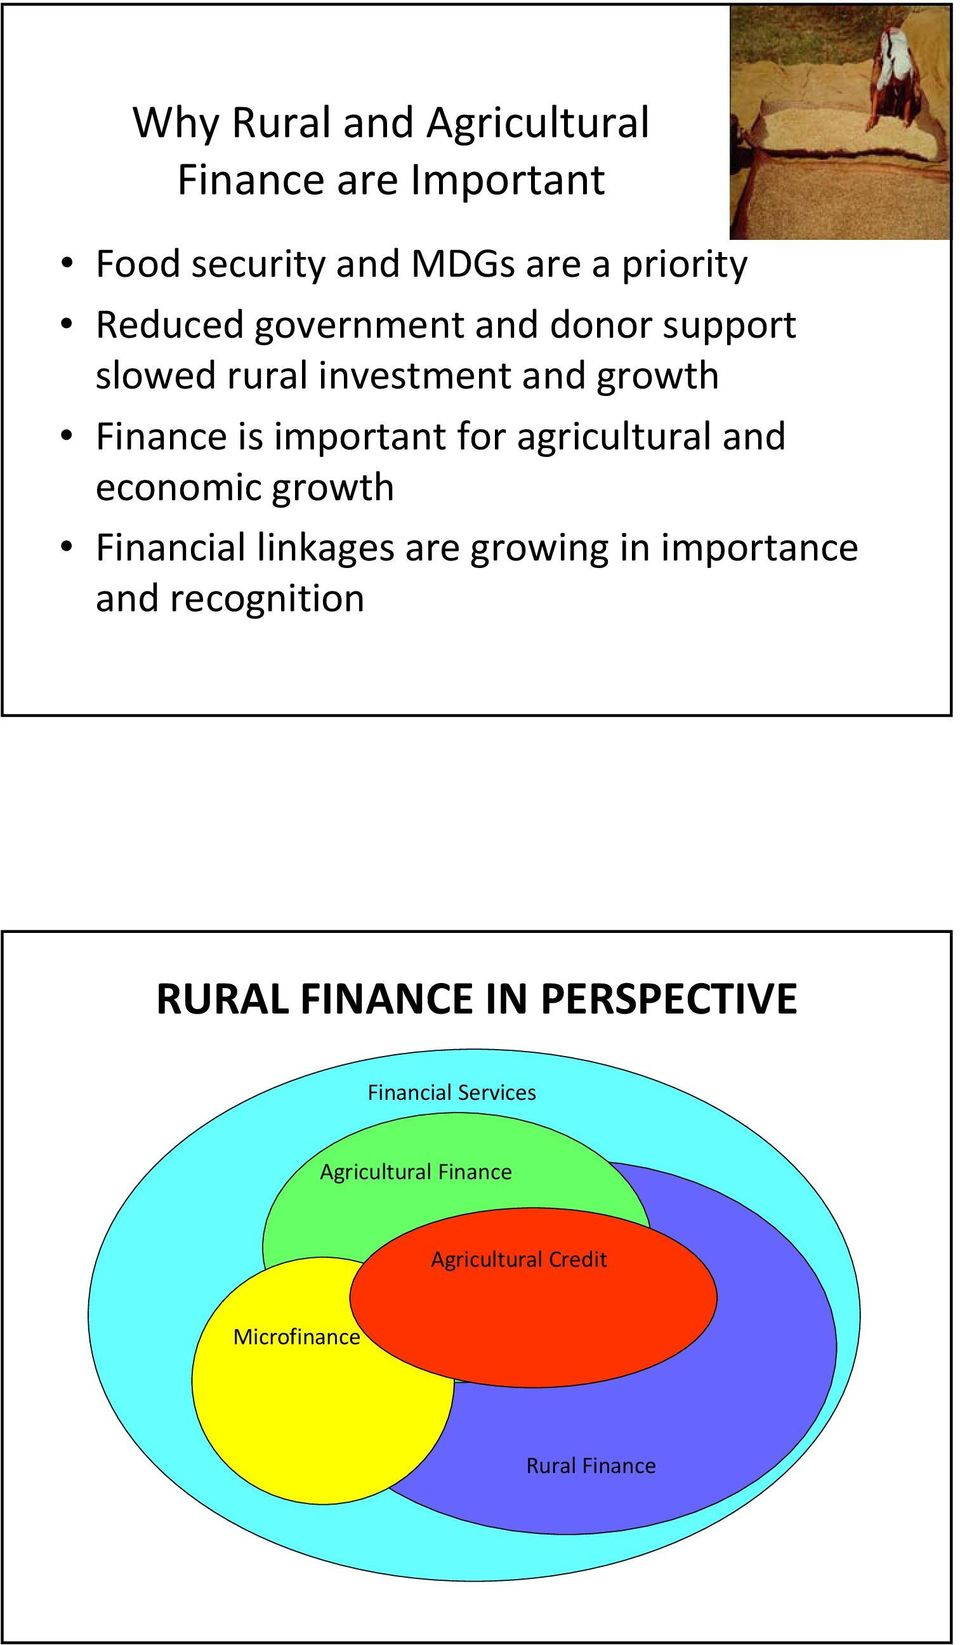 and economic growth Financial linkages are growing in importance and recognition RURAL FINANCE IN